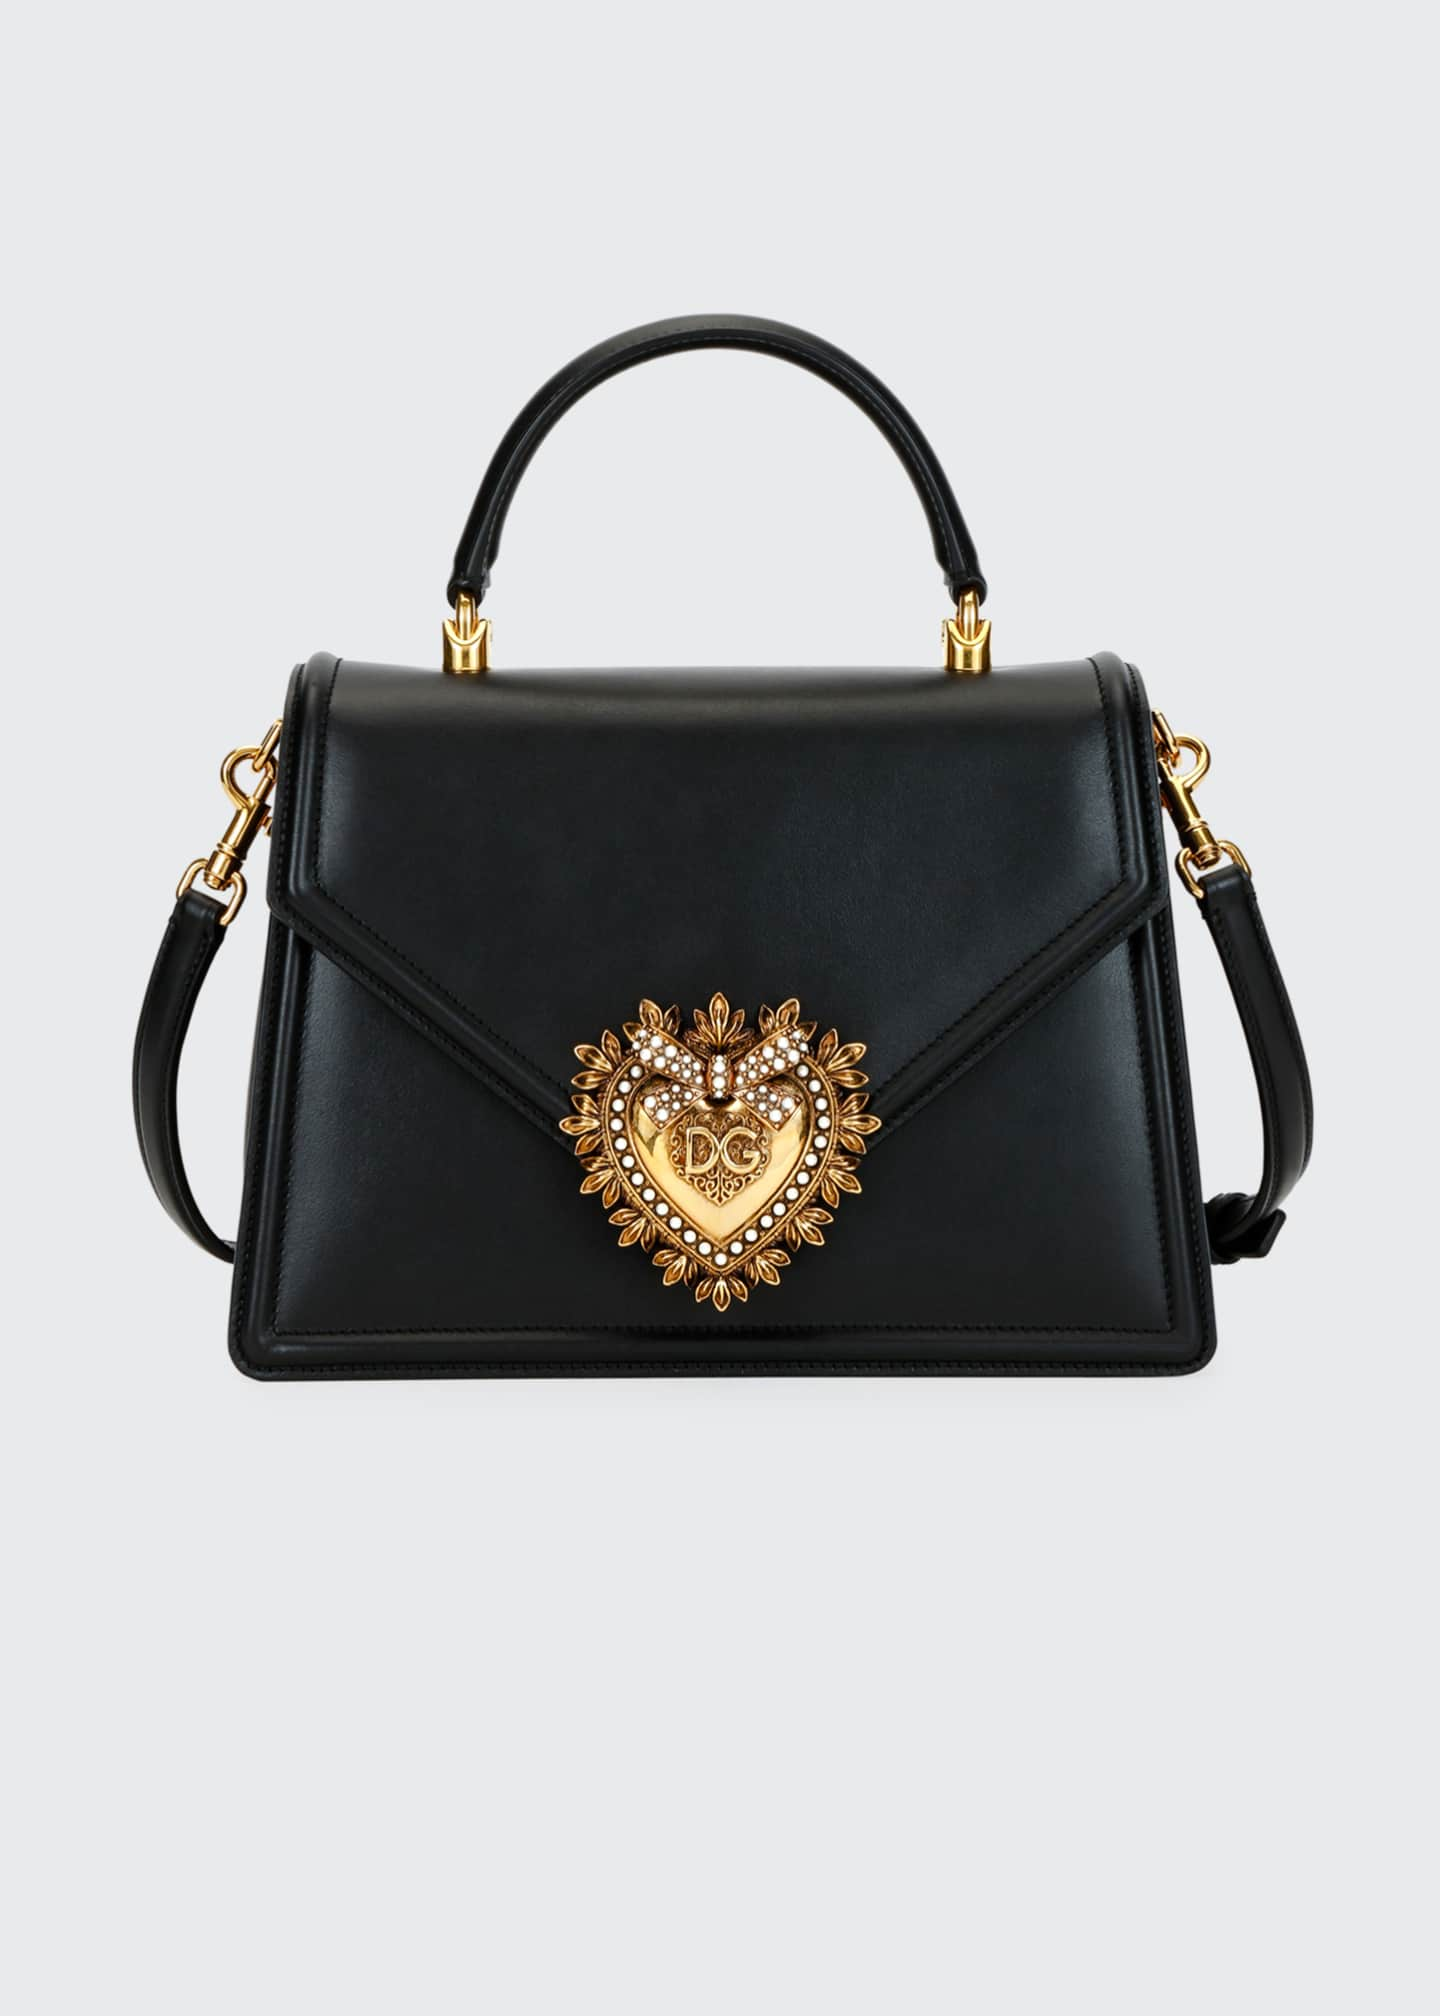 Dolce & Gabbana Devotion Leather Shoulder Bag